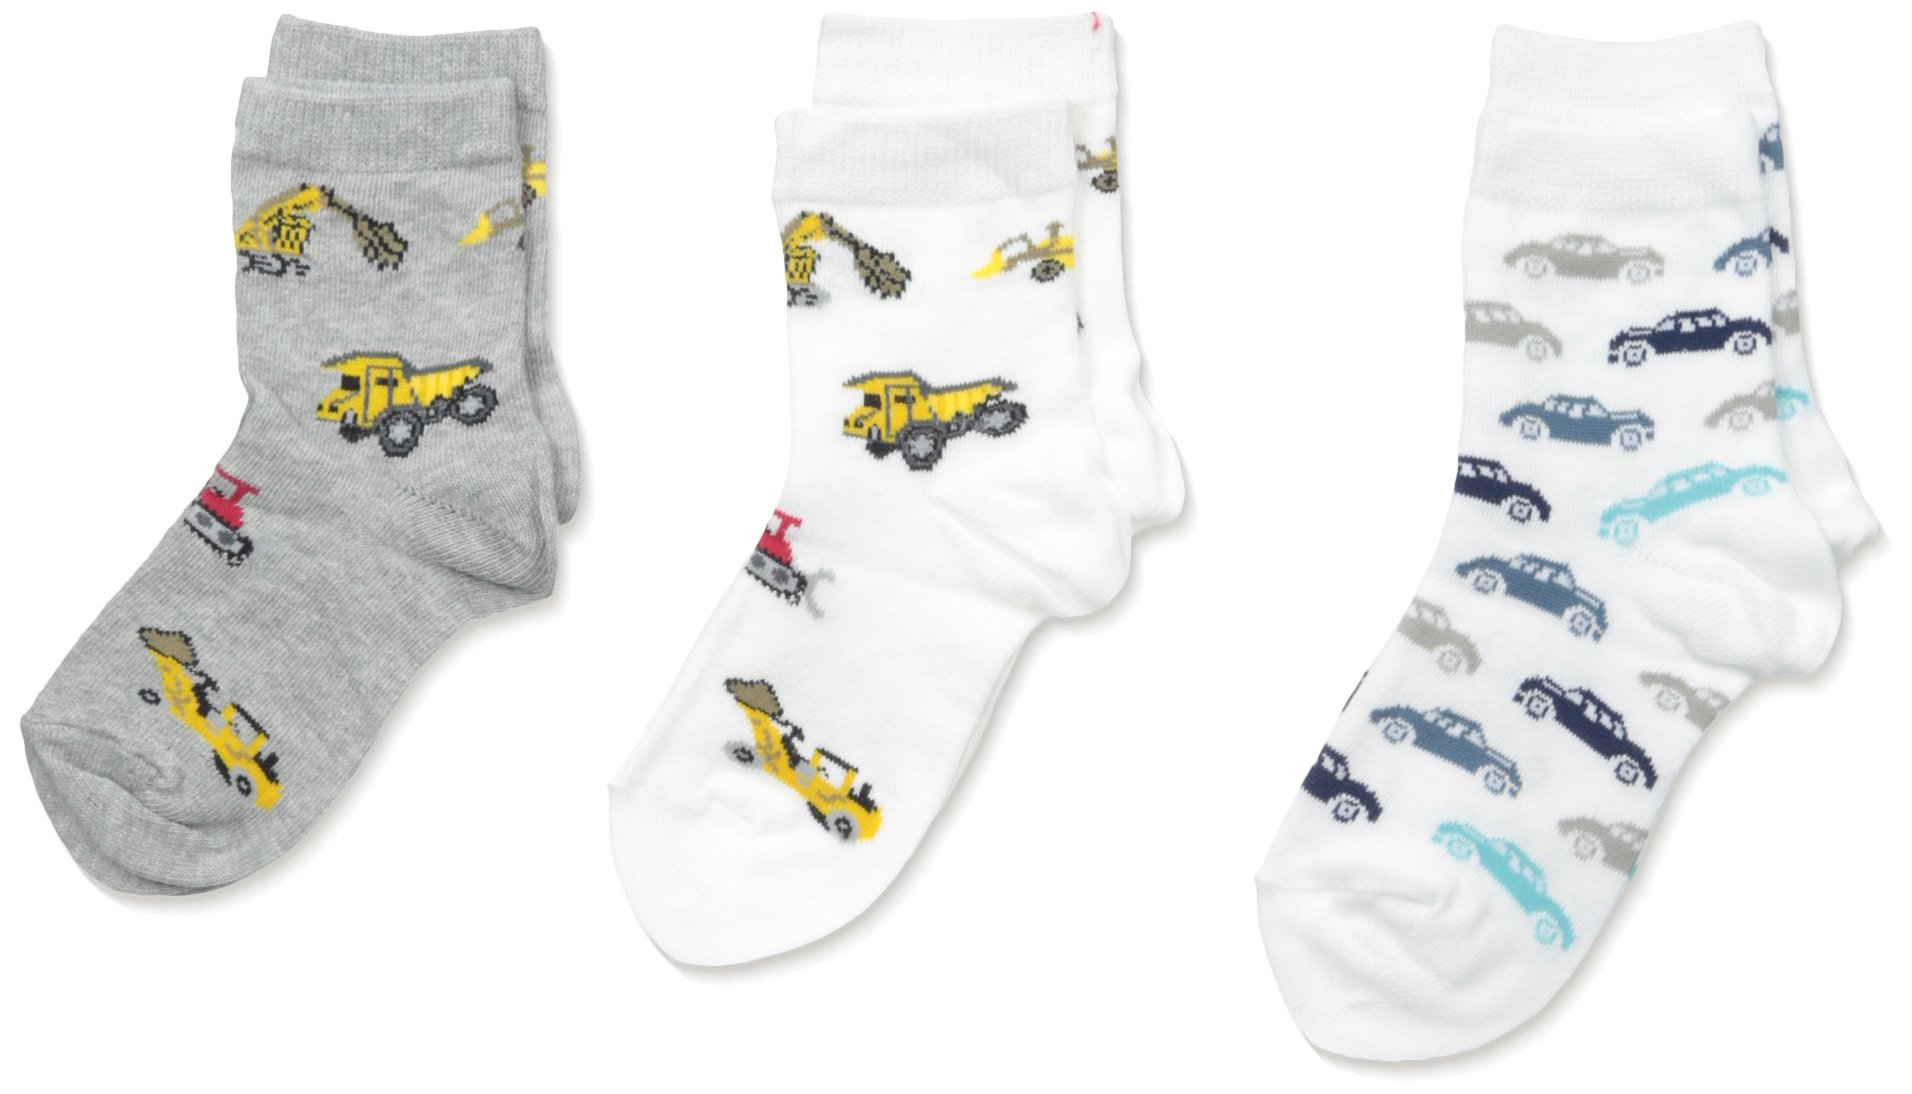 Country Kids Little Boys' Vintage Car and Bulldozer Sock 3 Pr, White/Gray, 8-9/6-10 Years